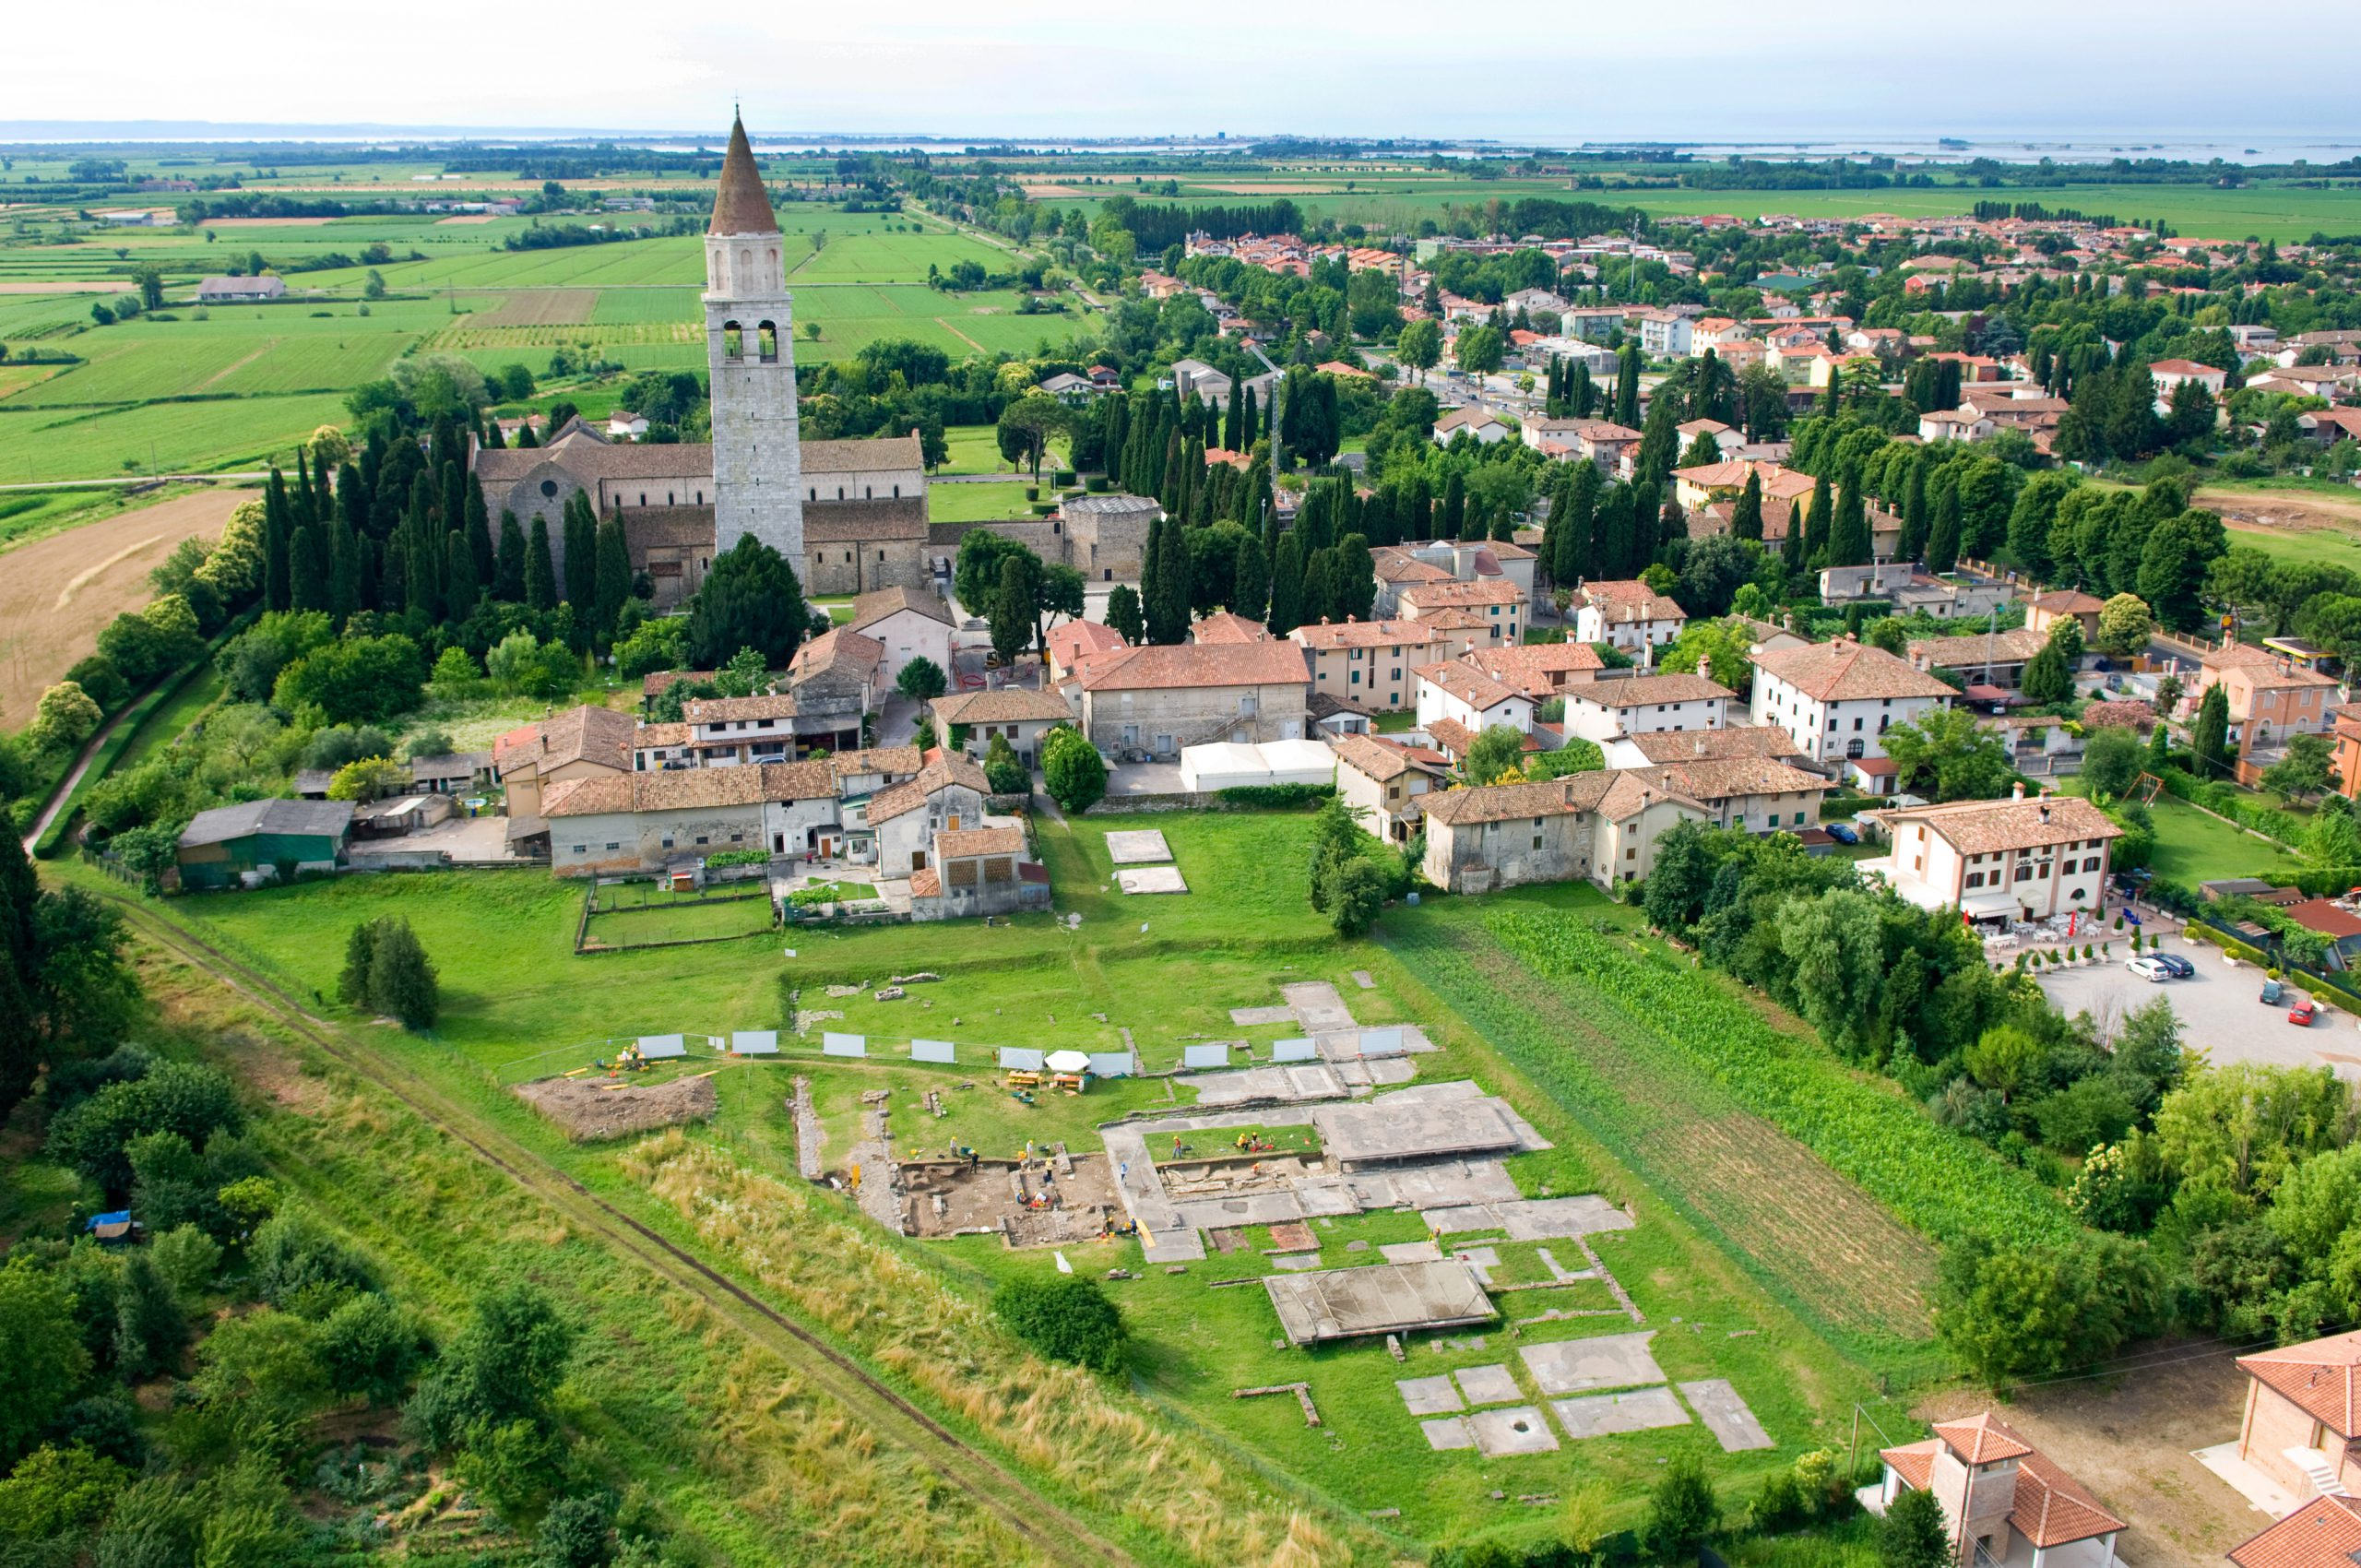 Roman excavations in Aquileia - an exciting excursion on a cycling holiday